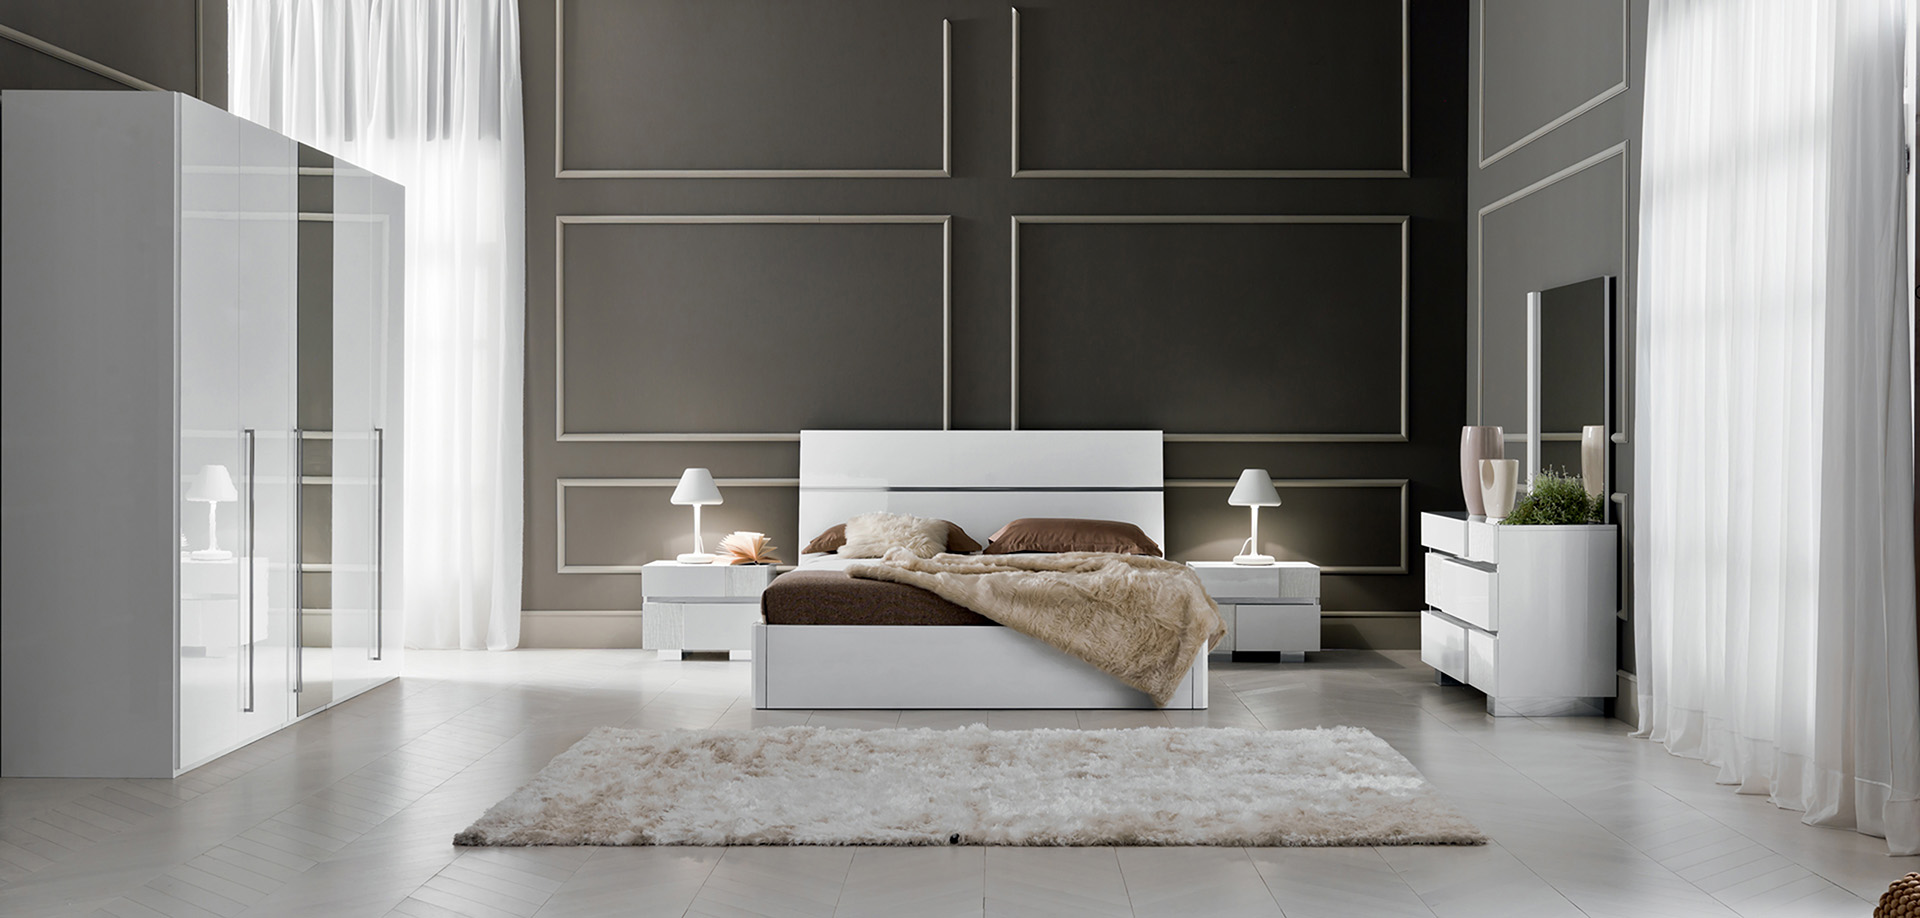 caprice-white-spring-lifter-bed